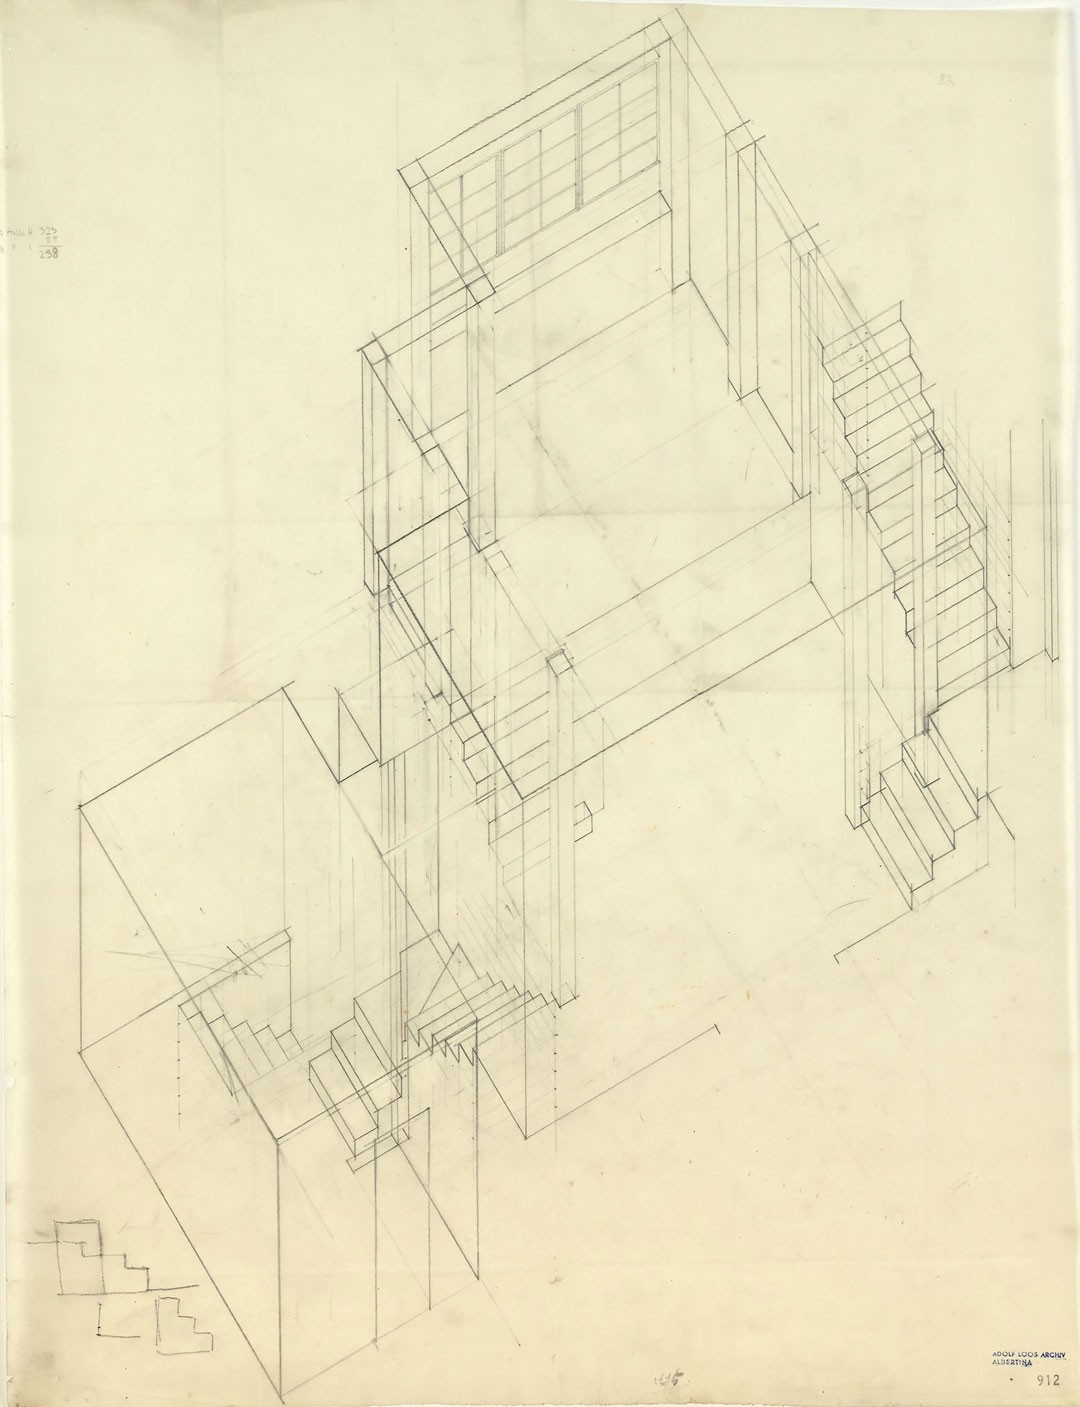 <BODY><div>Adolf Loos, House for Hans and Anny Moller, Vienna's 18th district, Starkfriedgasse 19, axonometric view of the stairways, 1927 </div><div>Tracing paper, pencil </div><div>© ALBERTINA, Vienna</div><div> </div></BODY>